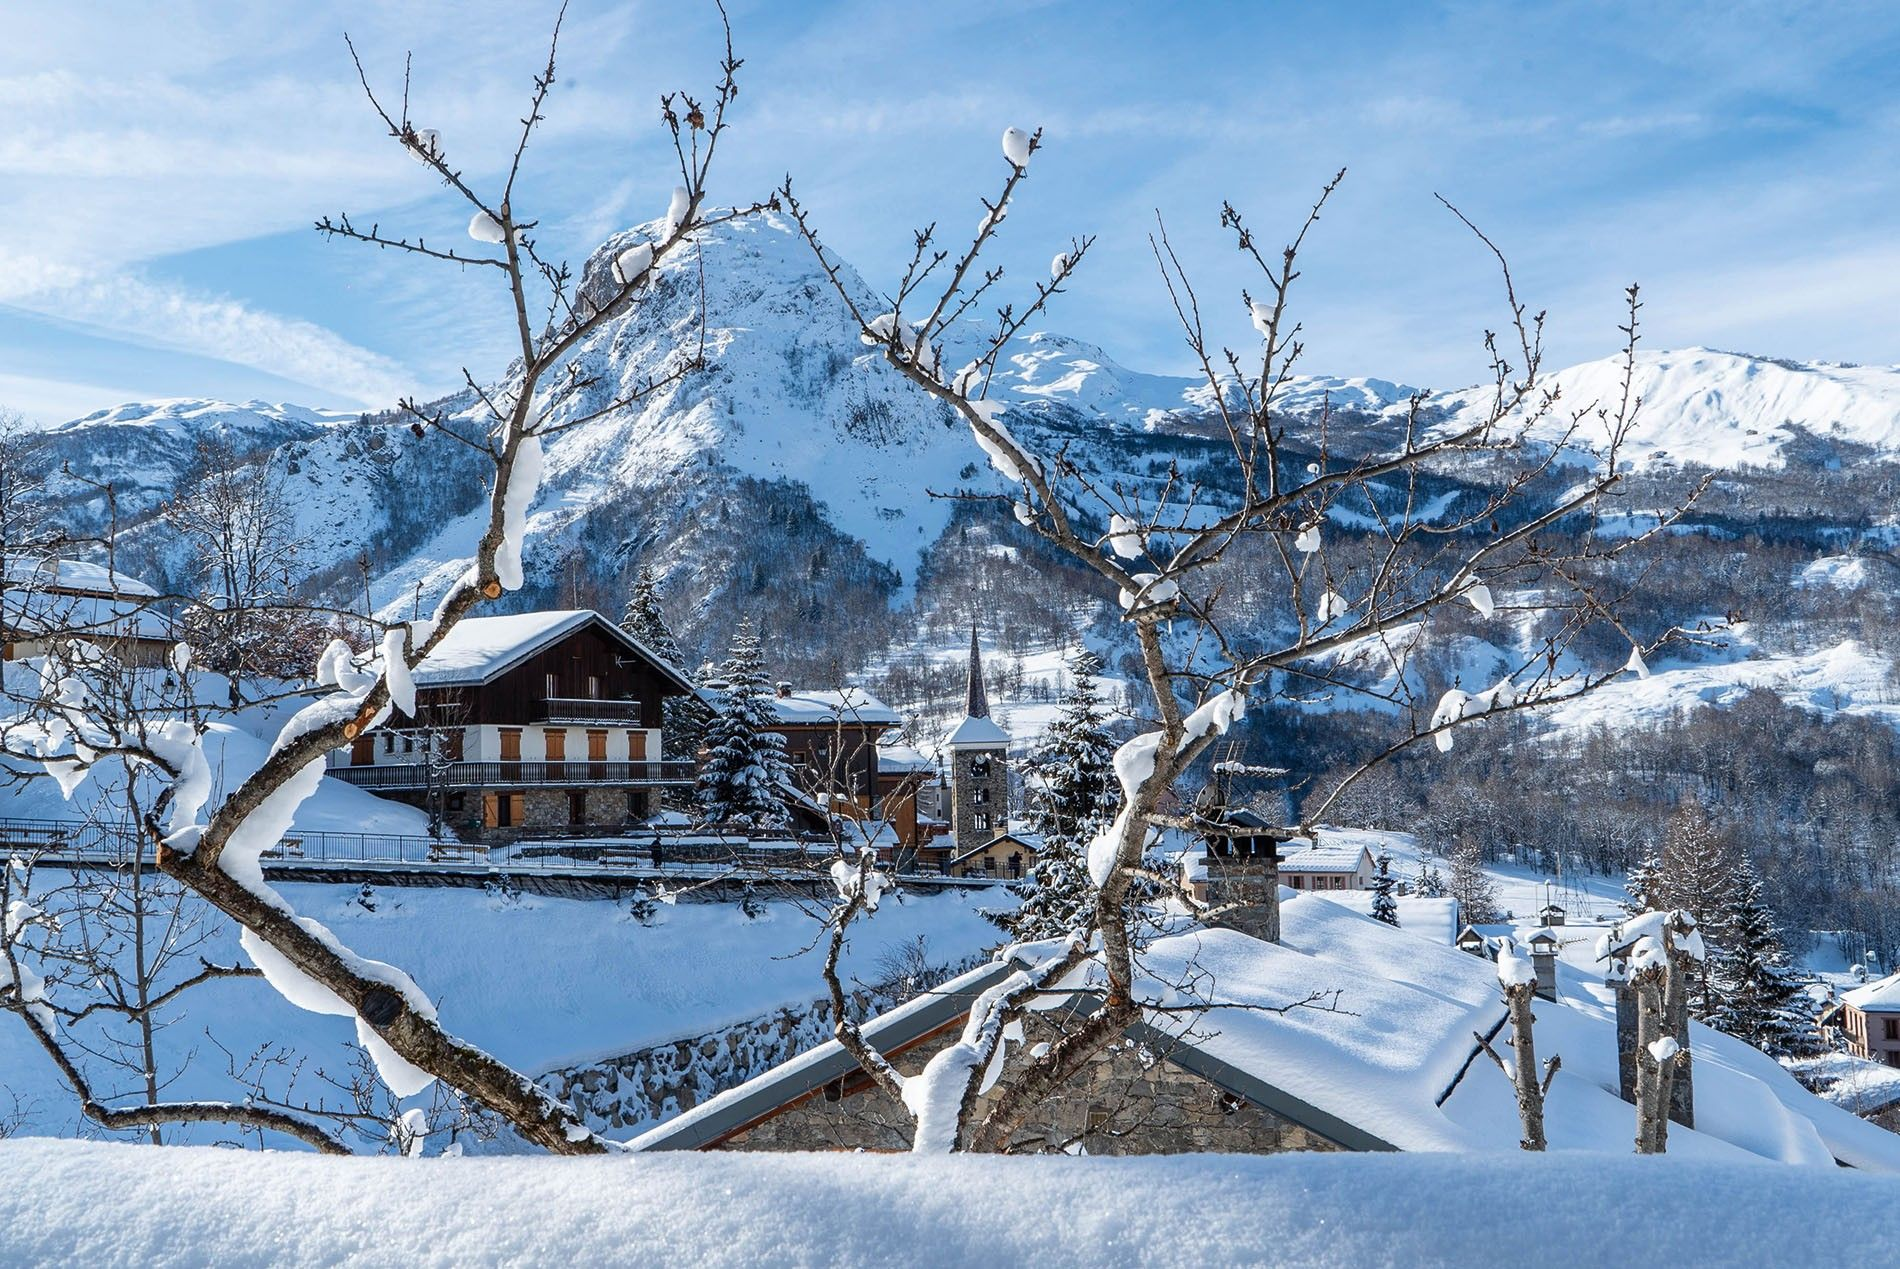 Within easy reach of the Les Trois Vallées ski area, the centuries-old village of St Martin de Belleville ticks all the Francophile boxes.